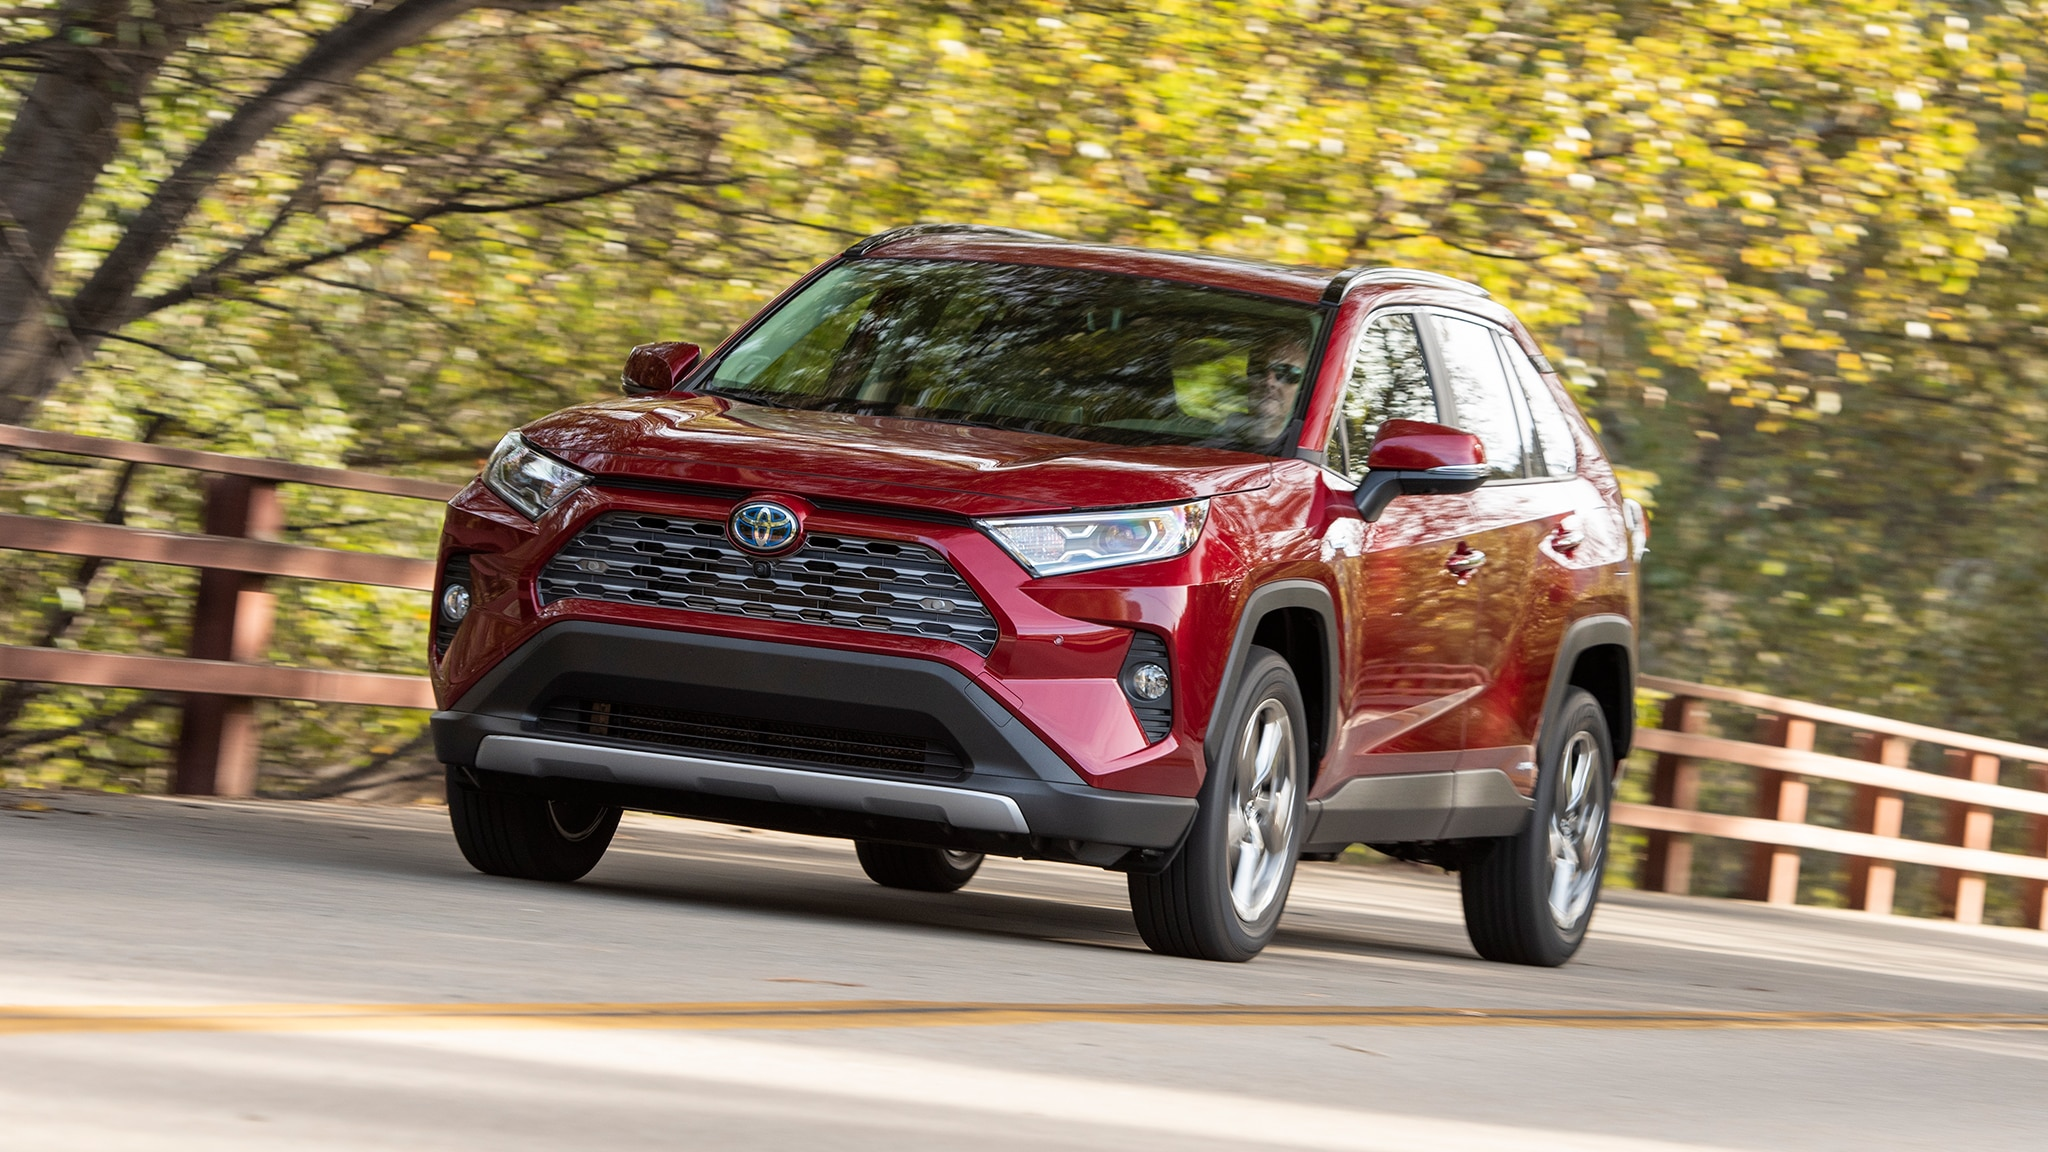 2019 toyota rav4 first drive review automobile magazine. Black Bedroom Furniture Sets. Home Design Ideas